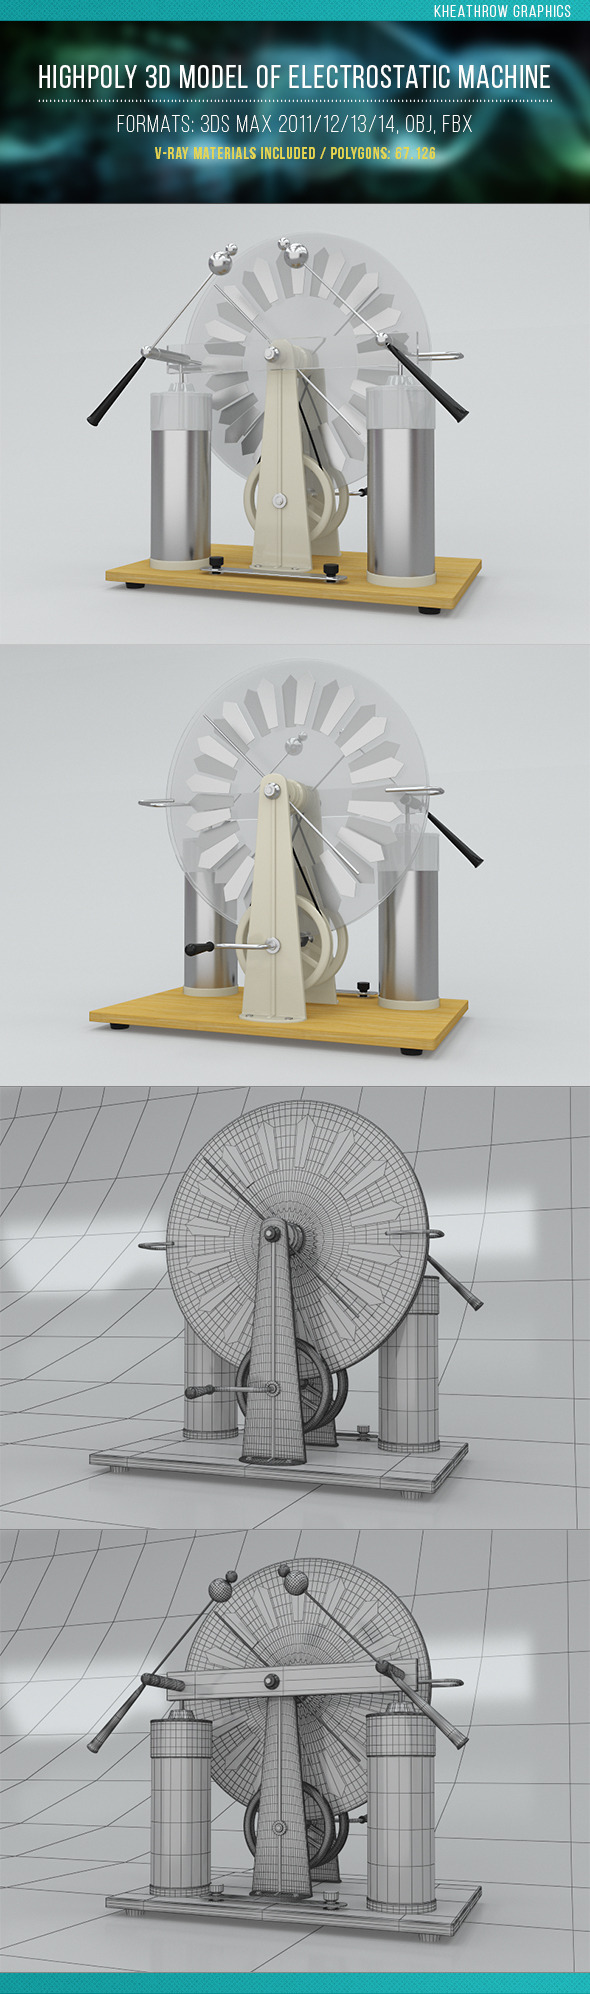 Highpoly 3d Model of Electrostatic Machine - 3DOcean Item for Sale